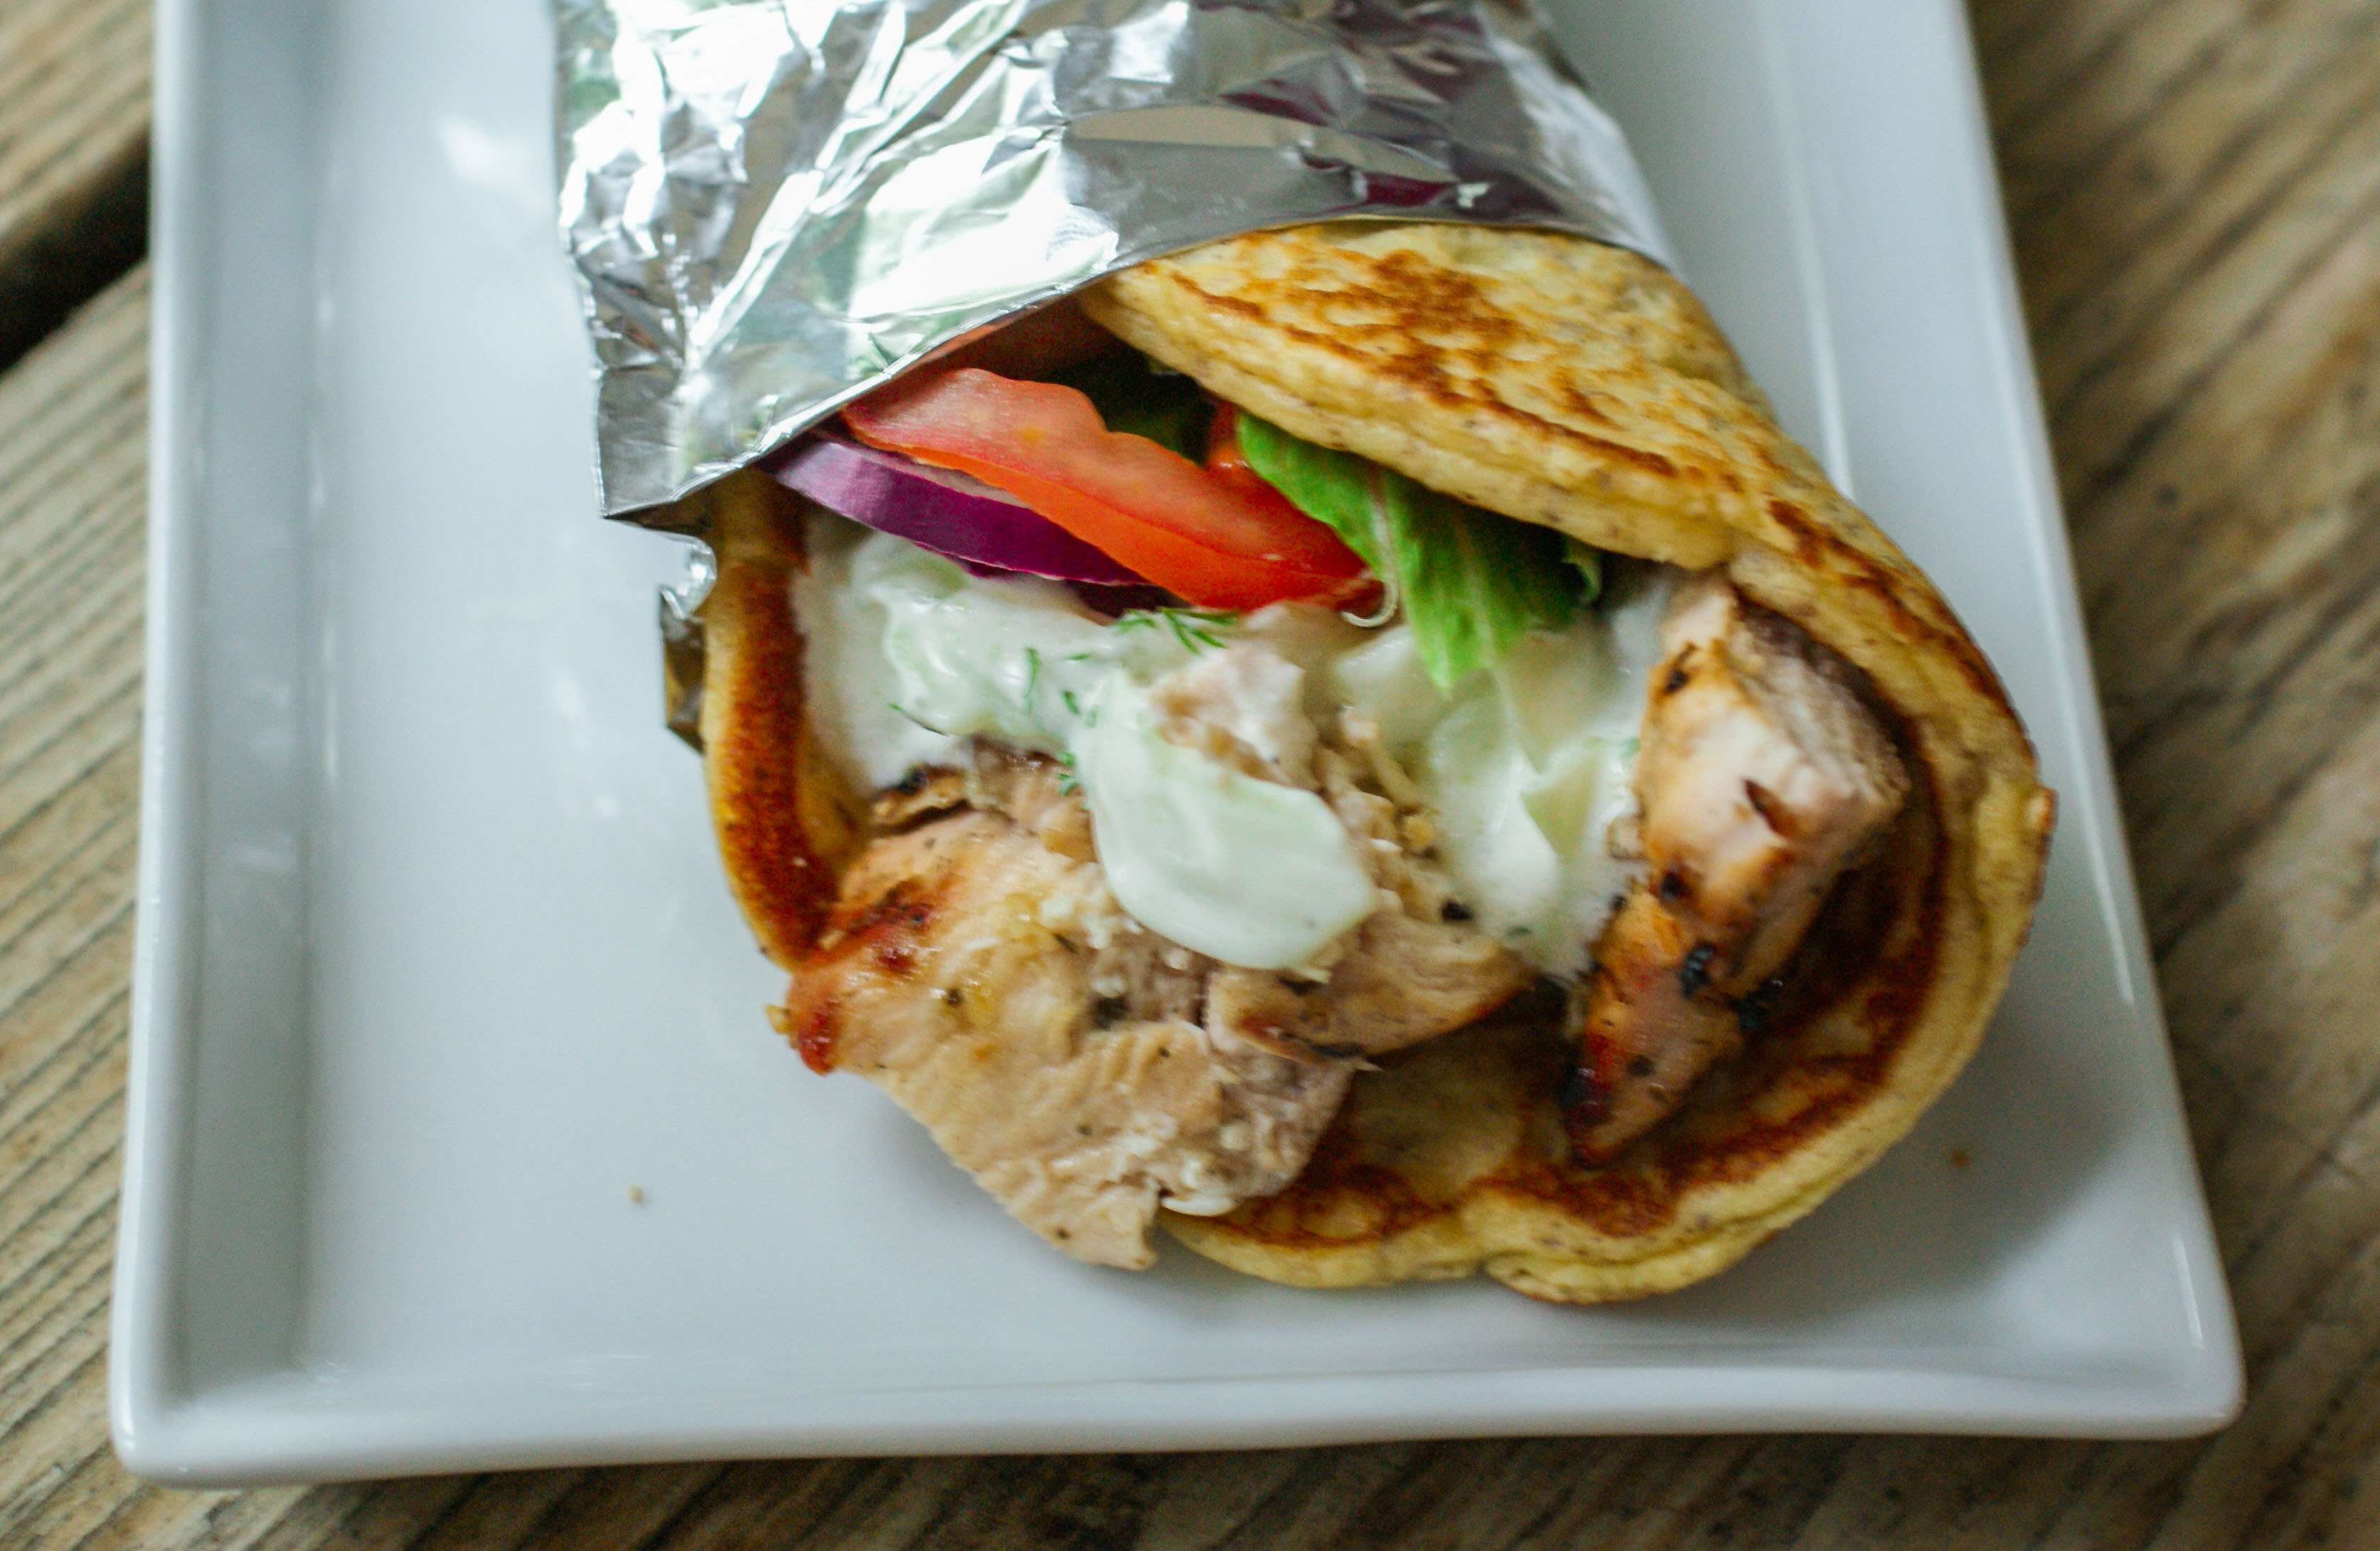 Our homemade gyros